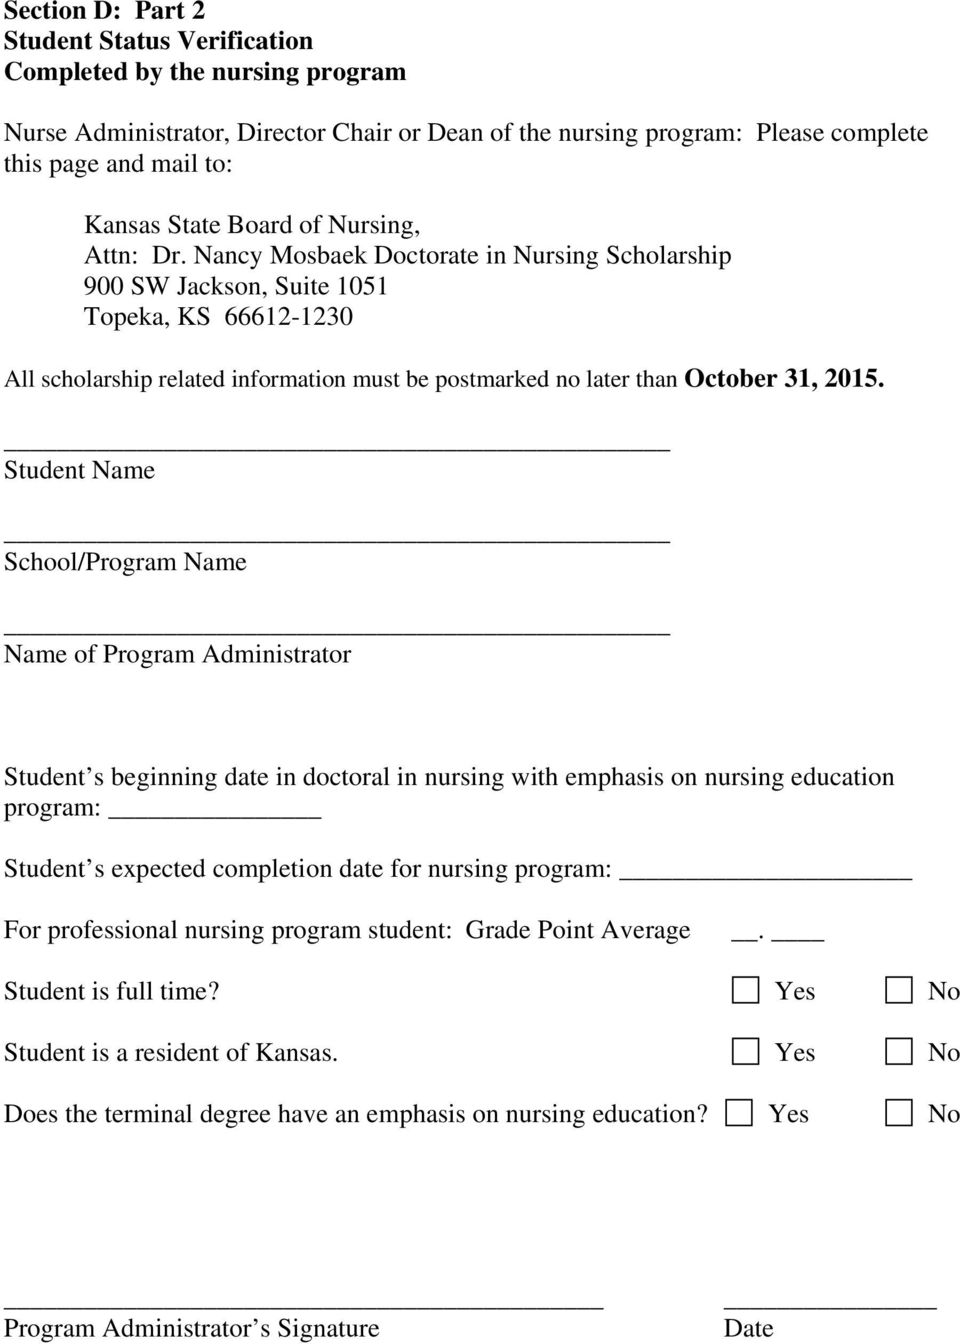 Nancy Mosbaek Doctorate in Nursing Scholarship 900 SW Jackson, Suite 1051 Topeka, KS 66612-1230 All scholarship related information must be postmarked no later than October 31, 2015.